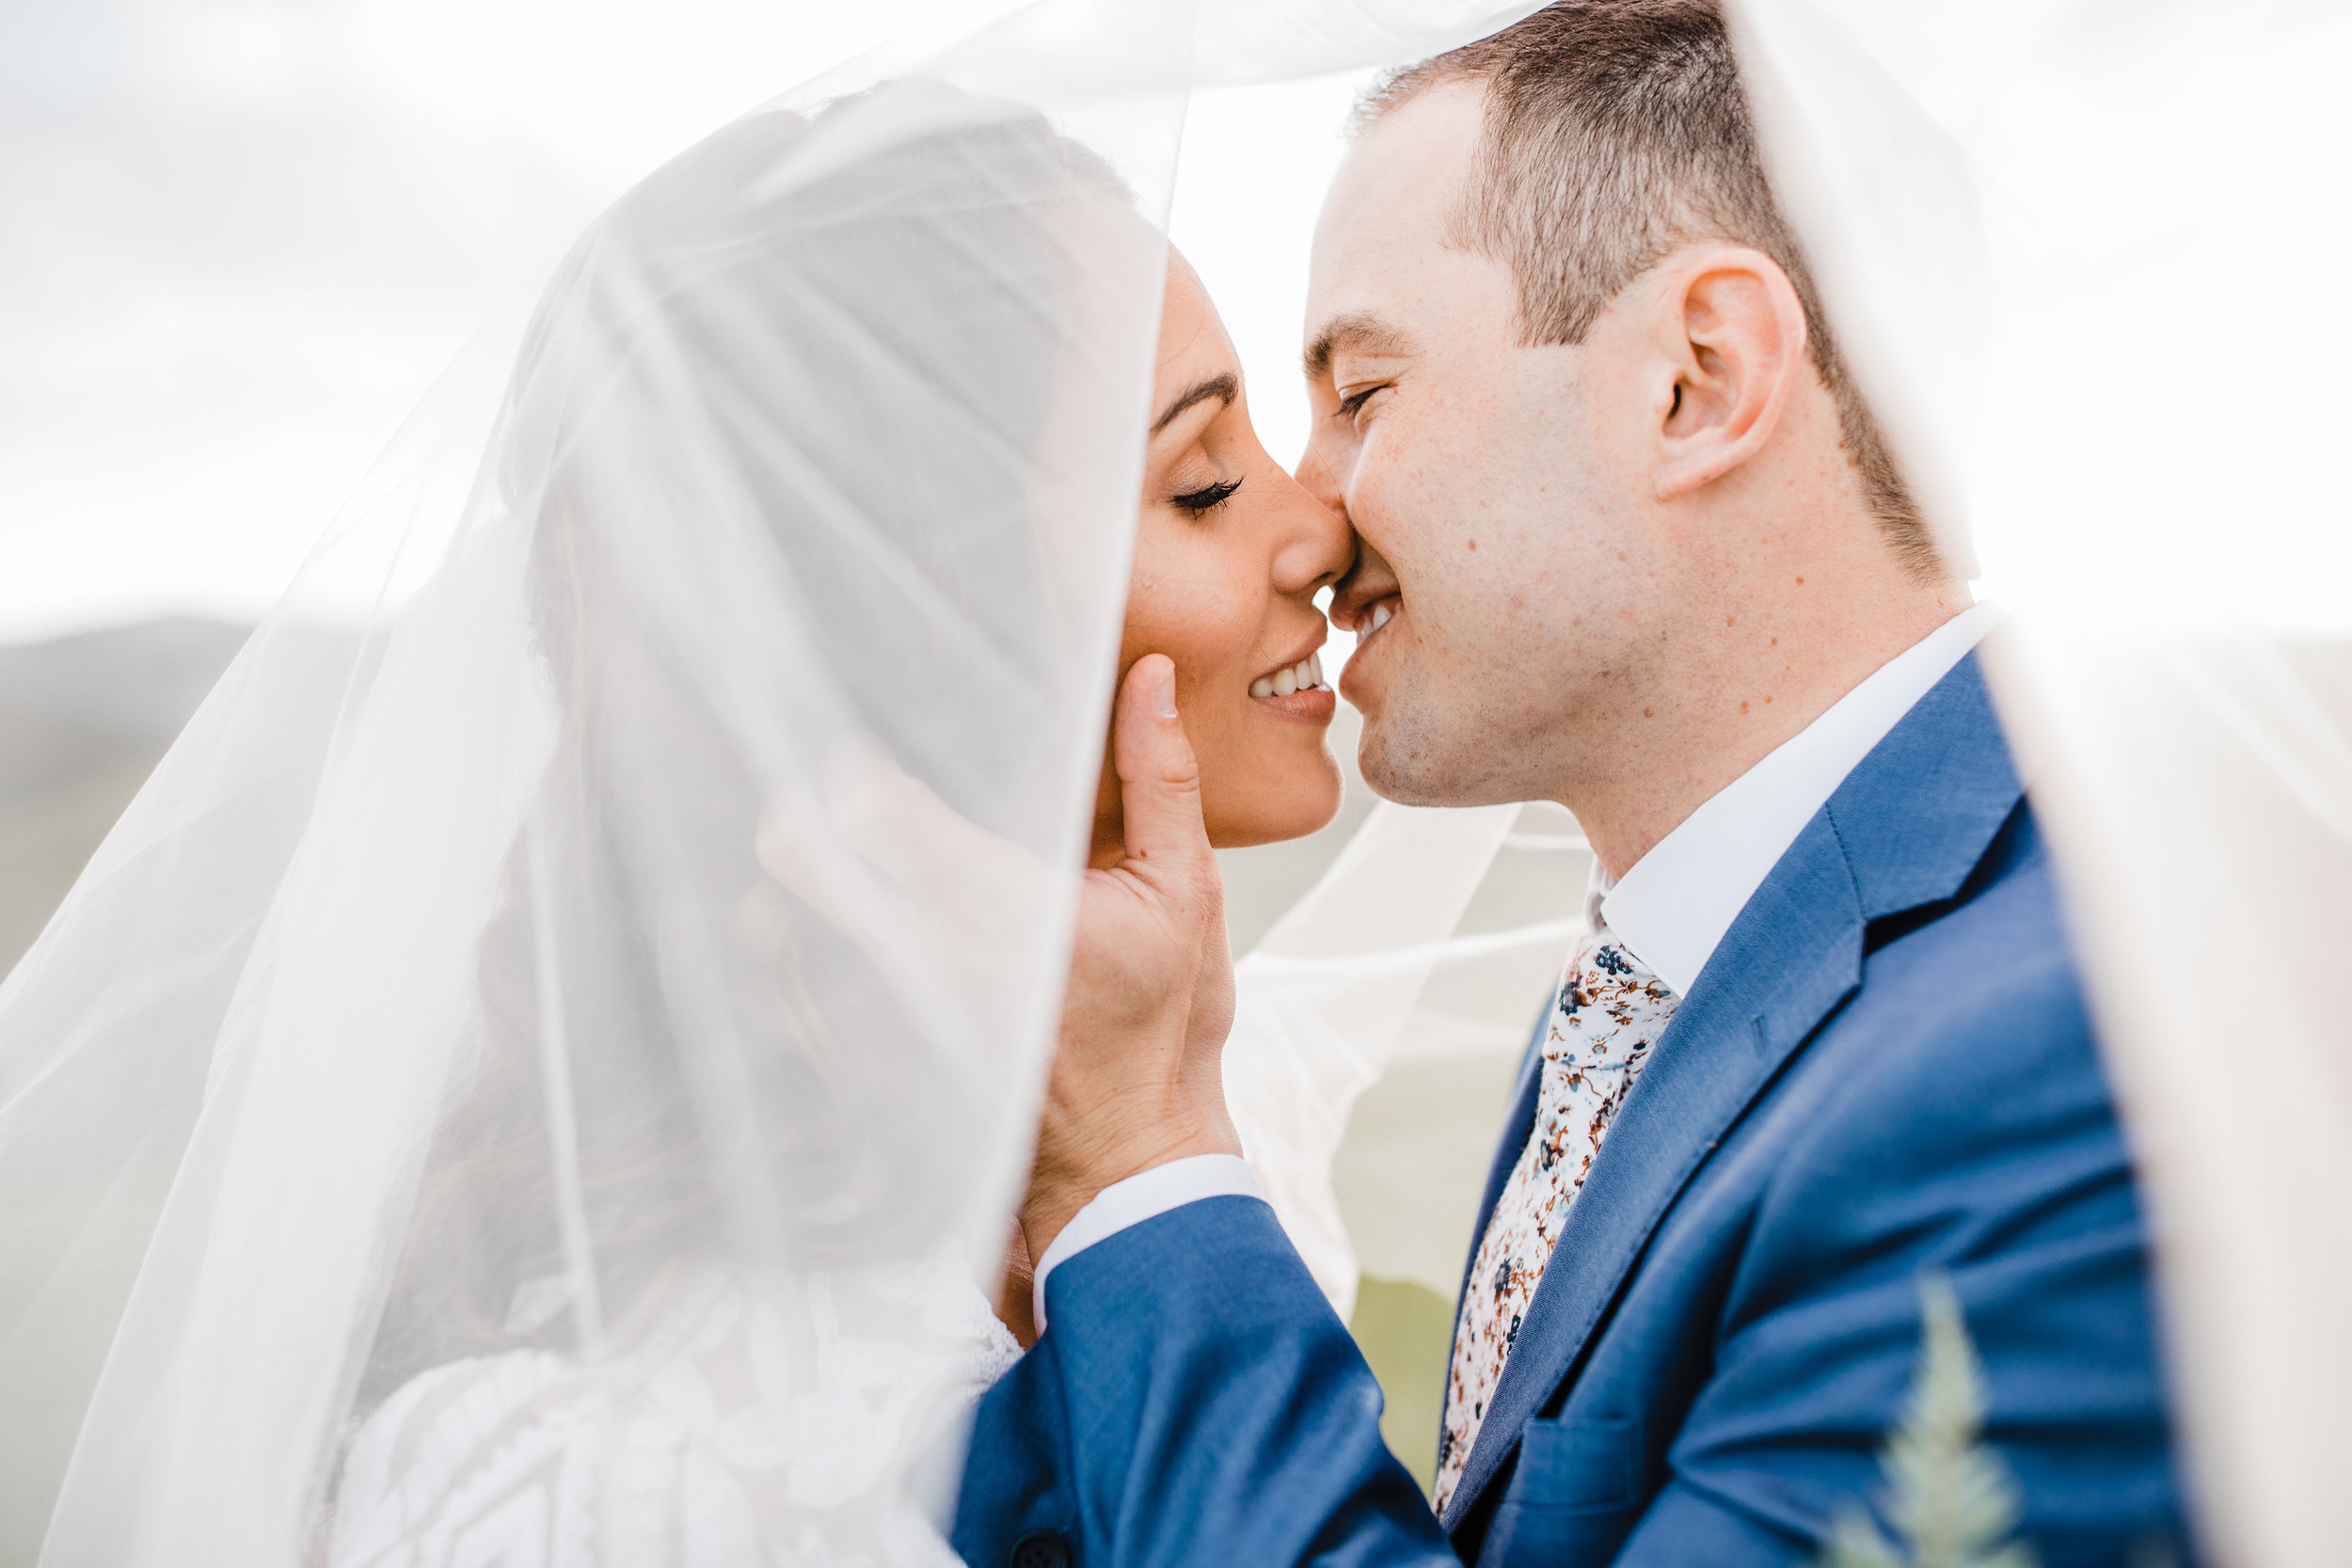 professional wedding photographer logan utah veil kissing bridals